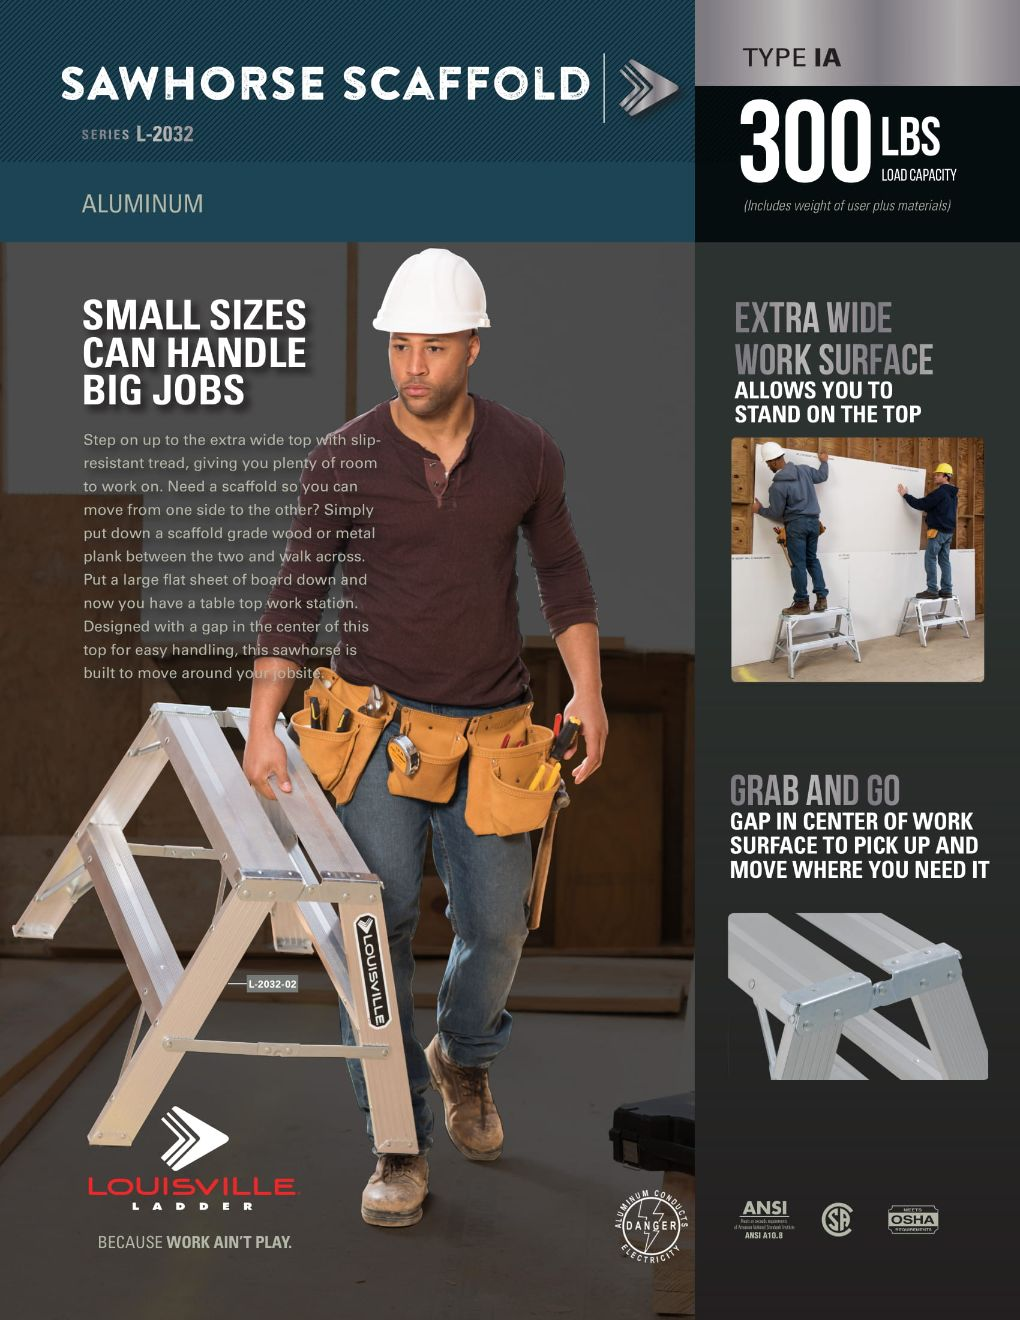 L-2032 Sawhorse Ladder Flyer and Spec Sheet Marketing Material Image